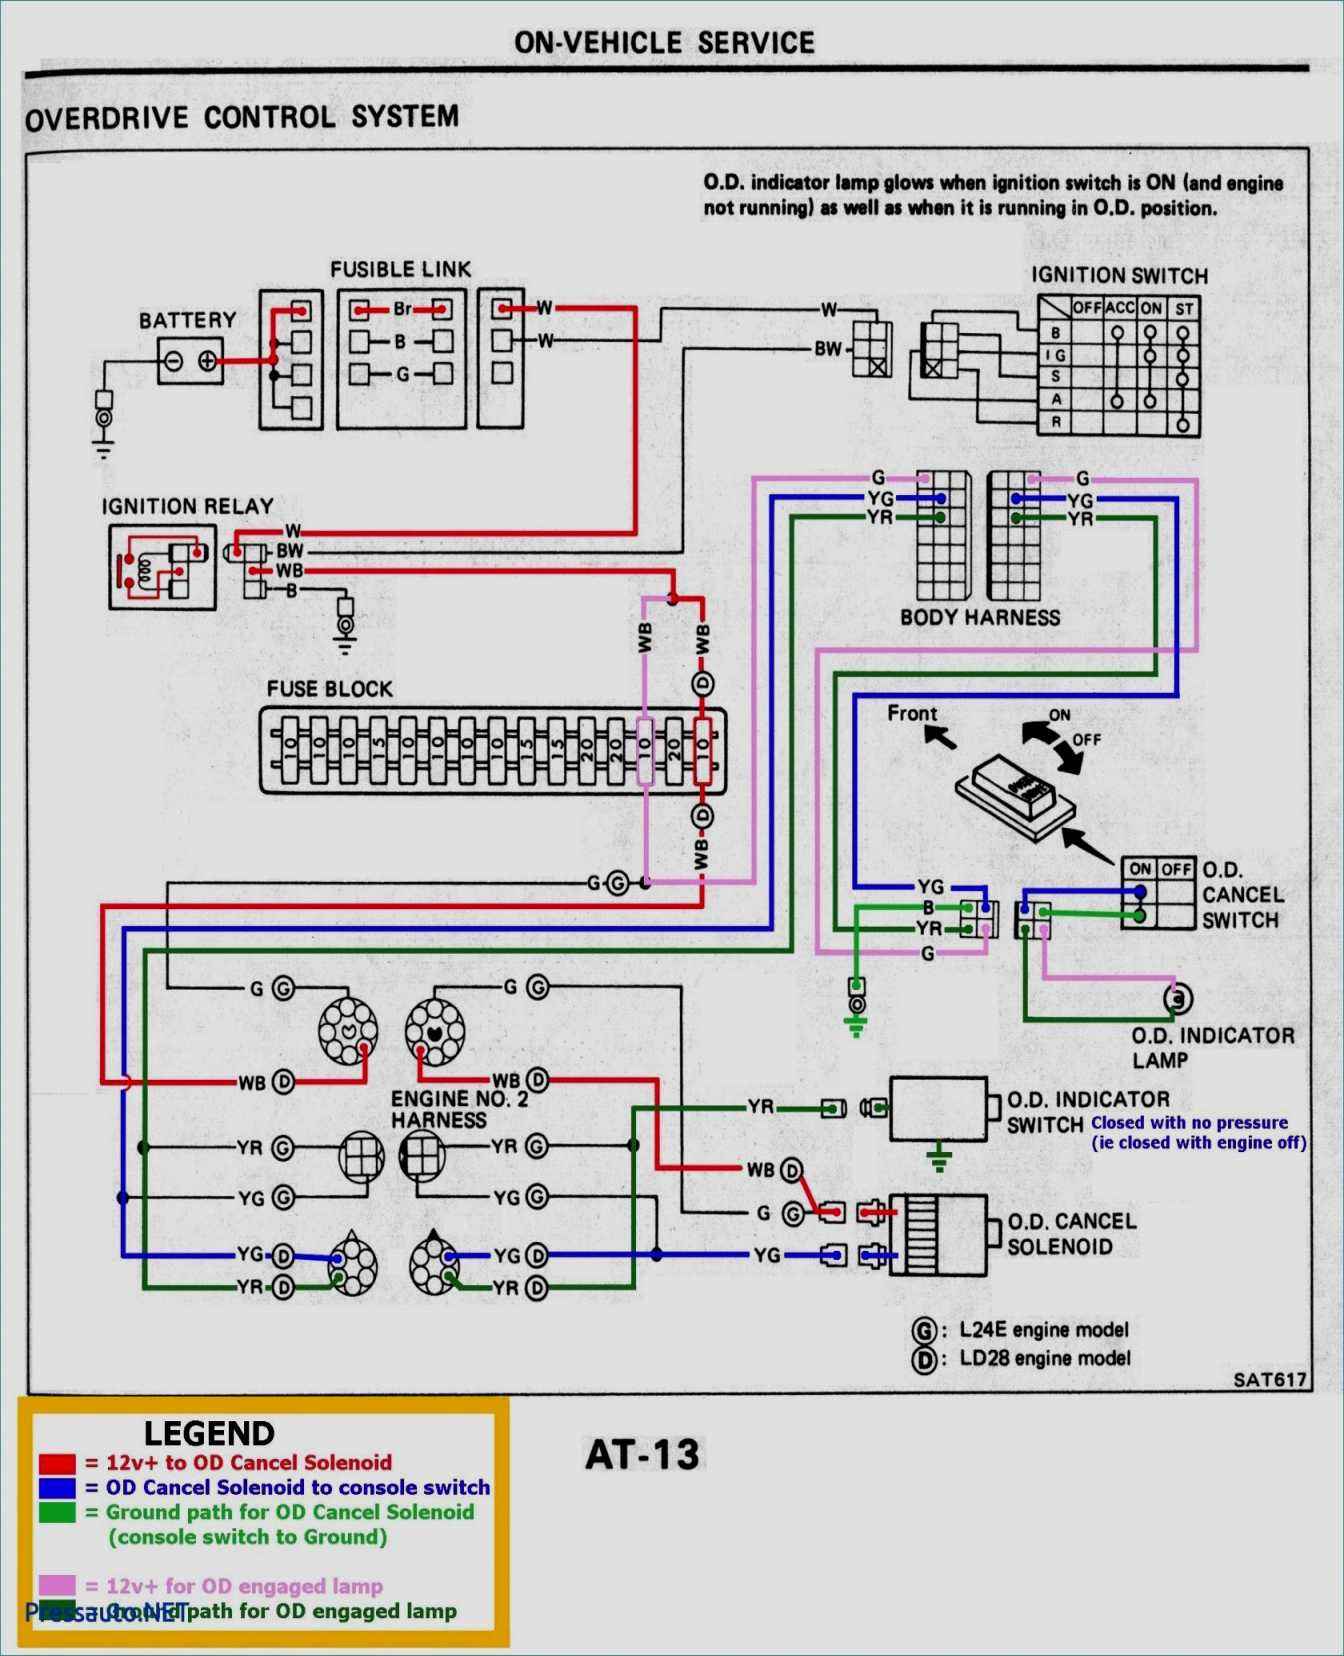 Tekonsha P3 Prodigy Electric Trailer Brake Controller Wiring Diagram - Electric Trailer Brake Controller Wiring Diagram